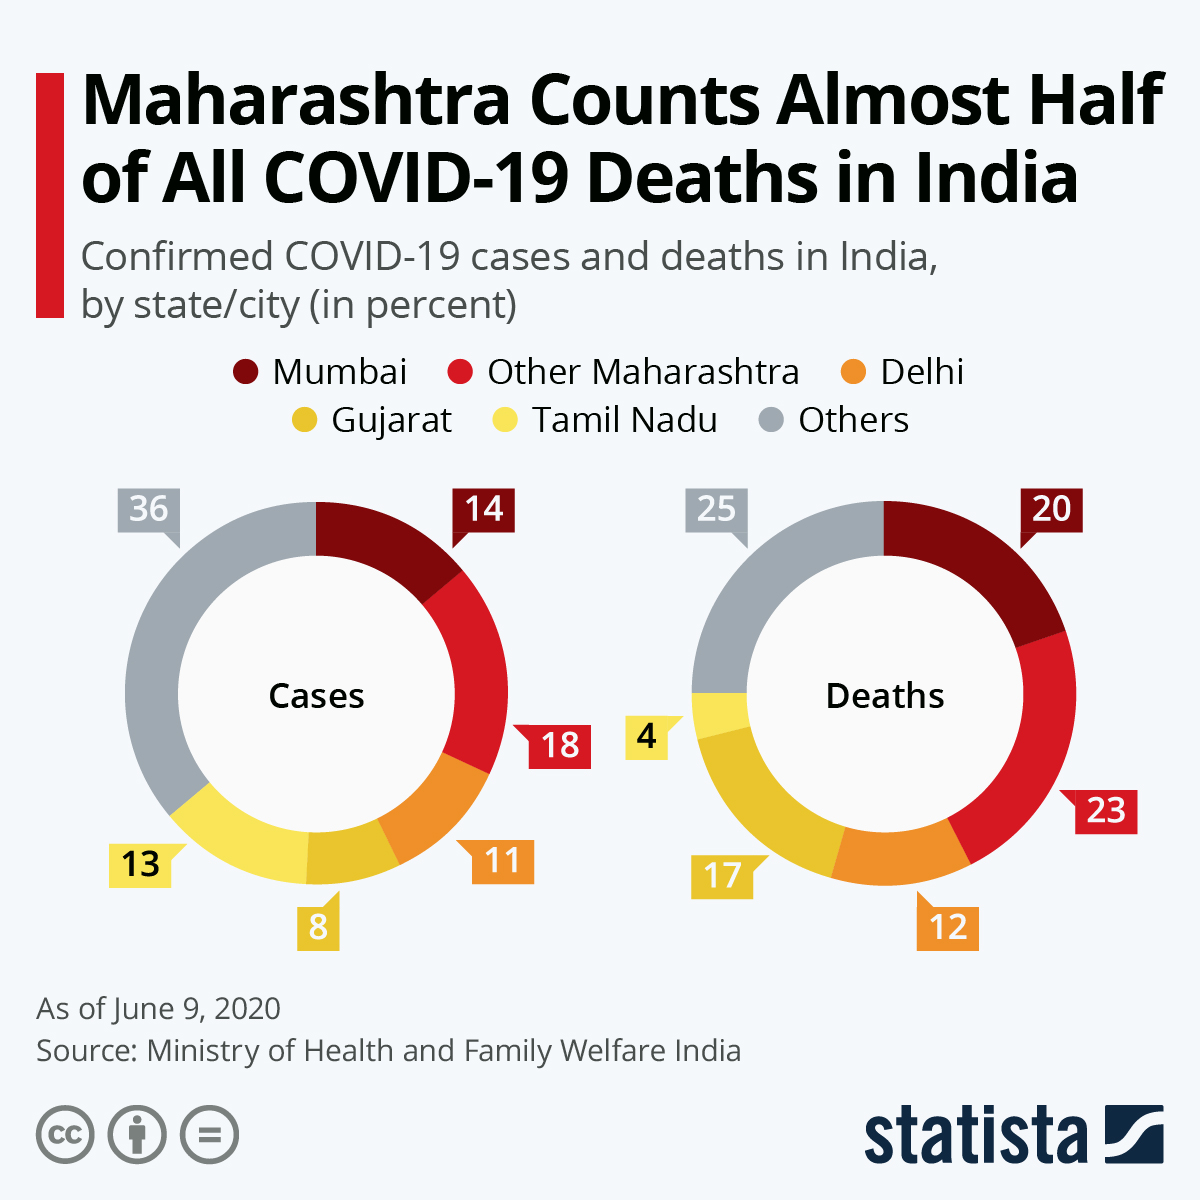 COVID-19 death tolls in Maharashtra make up the majority in India #Infographic